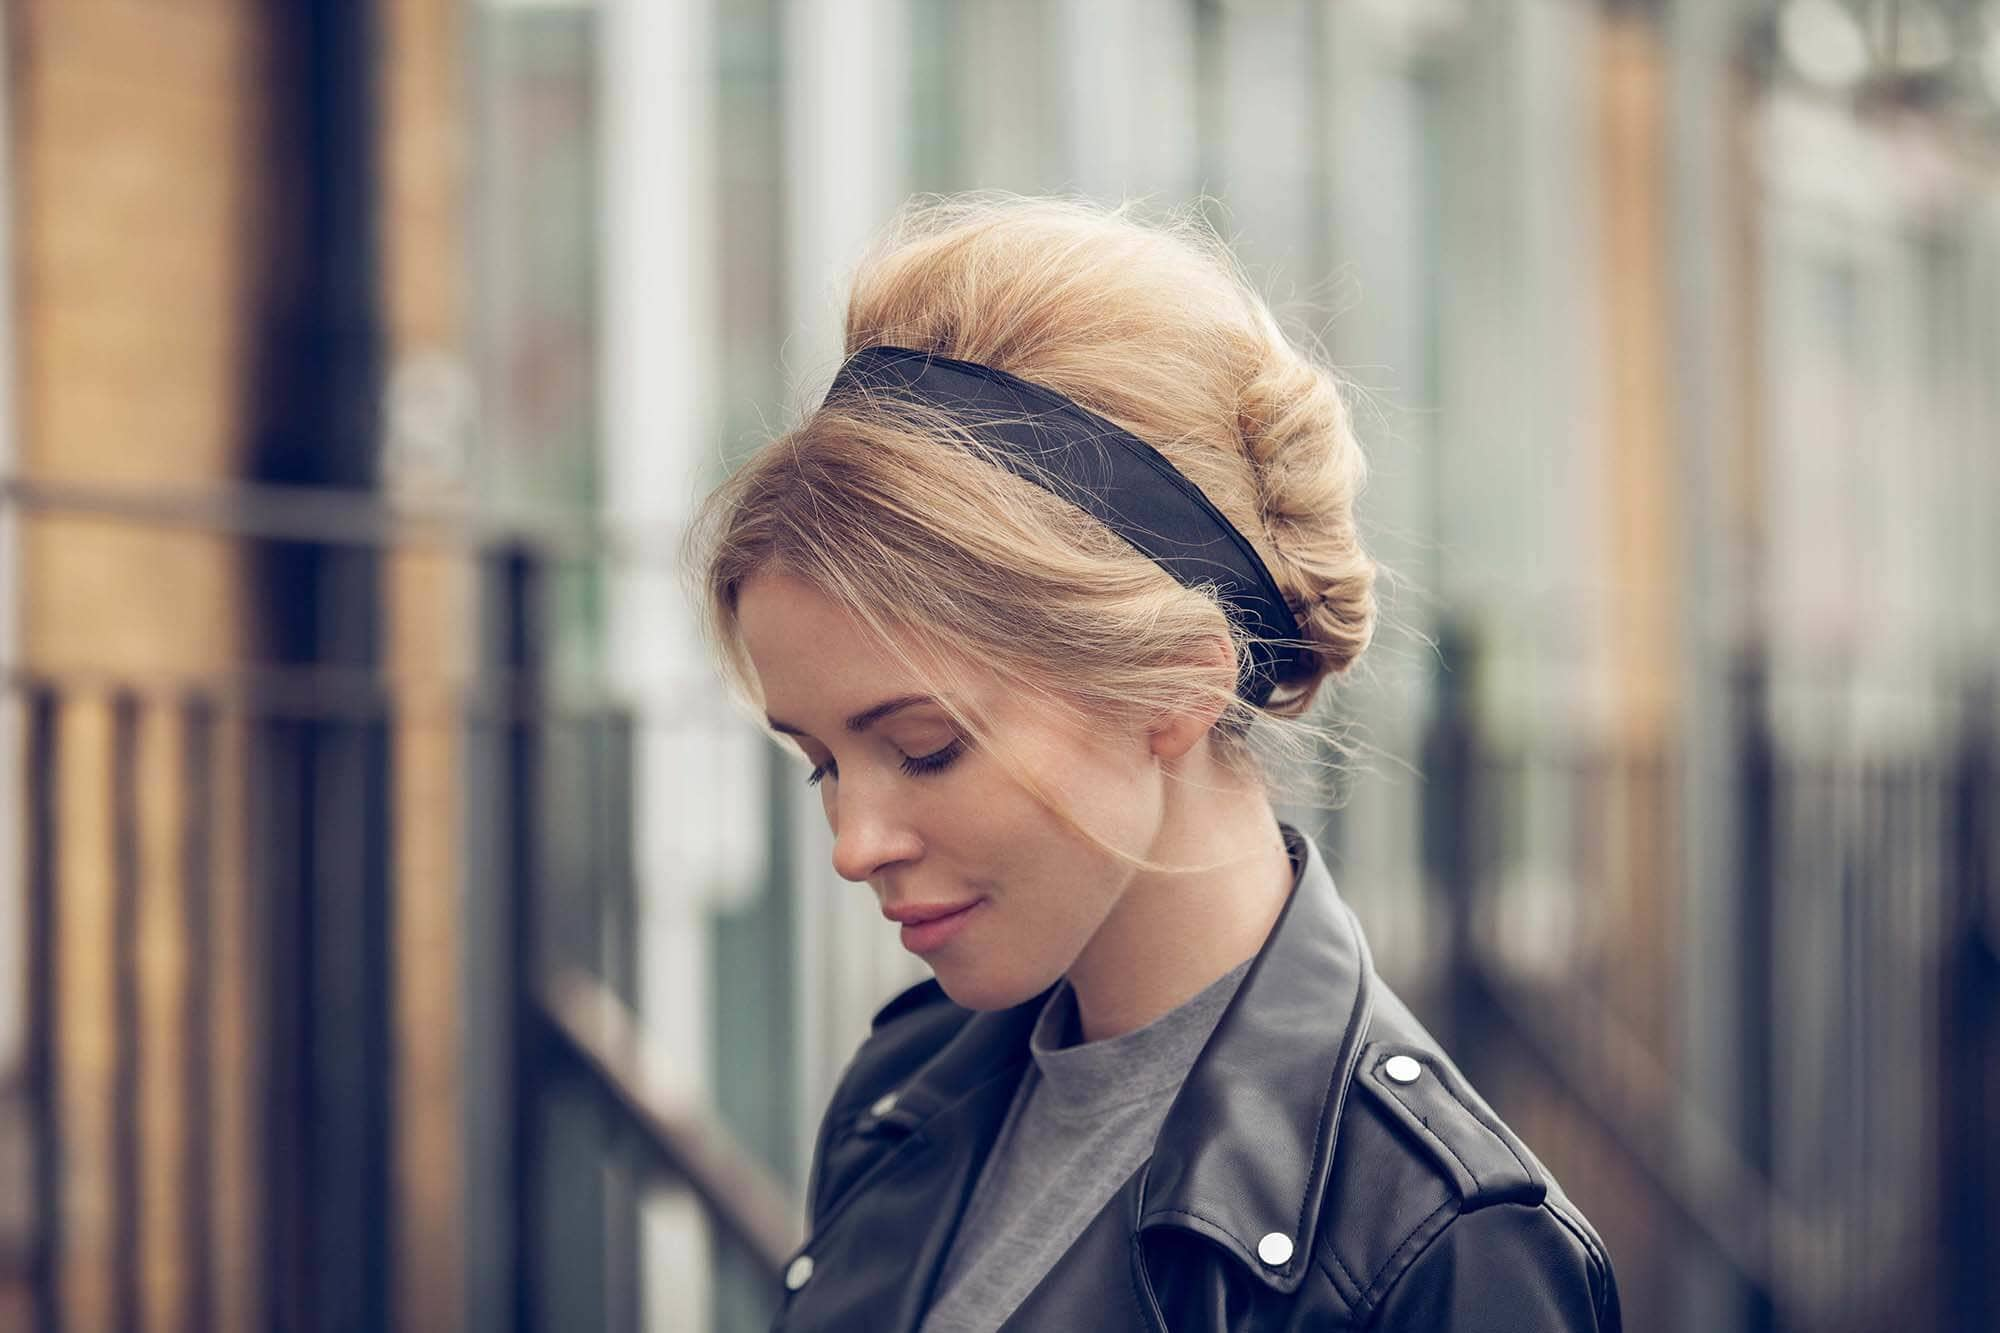 Vintage hairstyles: Blonde with a '60s Brigitte Bardot style bouffant beehive updo with a black headband